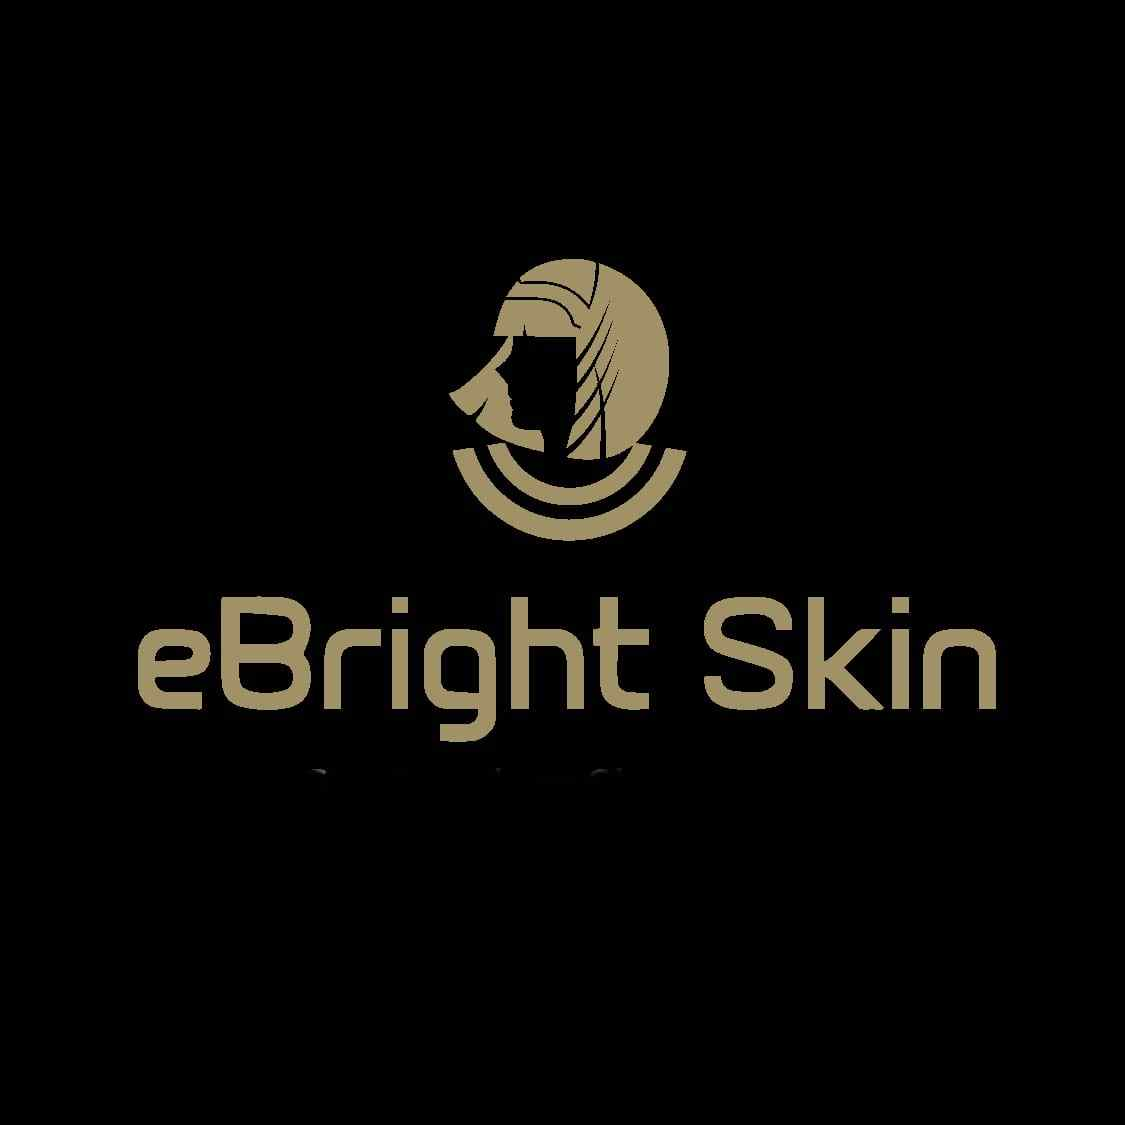 eBright Skin Official